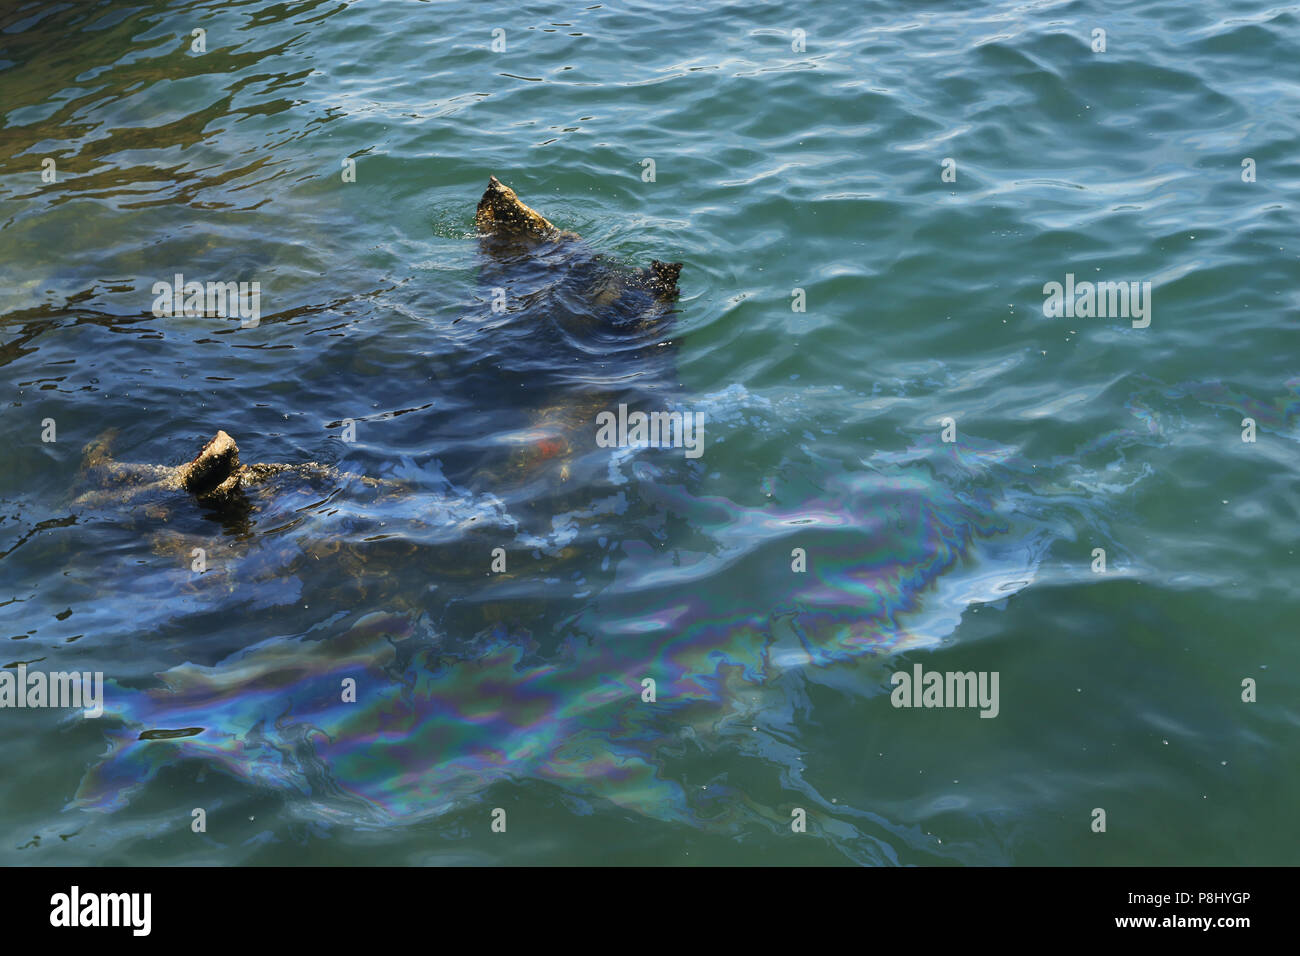 USS Arizona Memorial. Oil on the water comes from the sunken ship. World War II Valor in the Pacific National Monument, Pearl Harbor, Honolulu, Oahu I - Stock Image